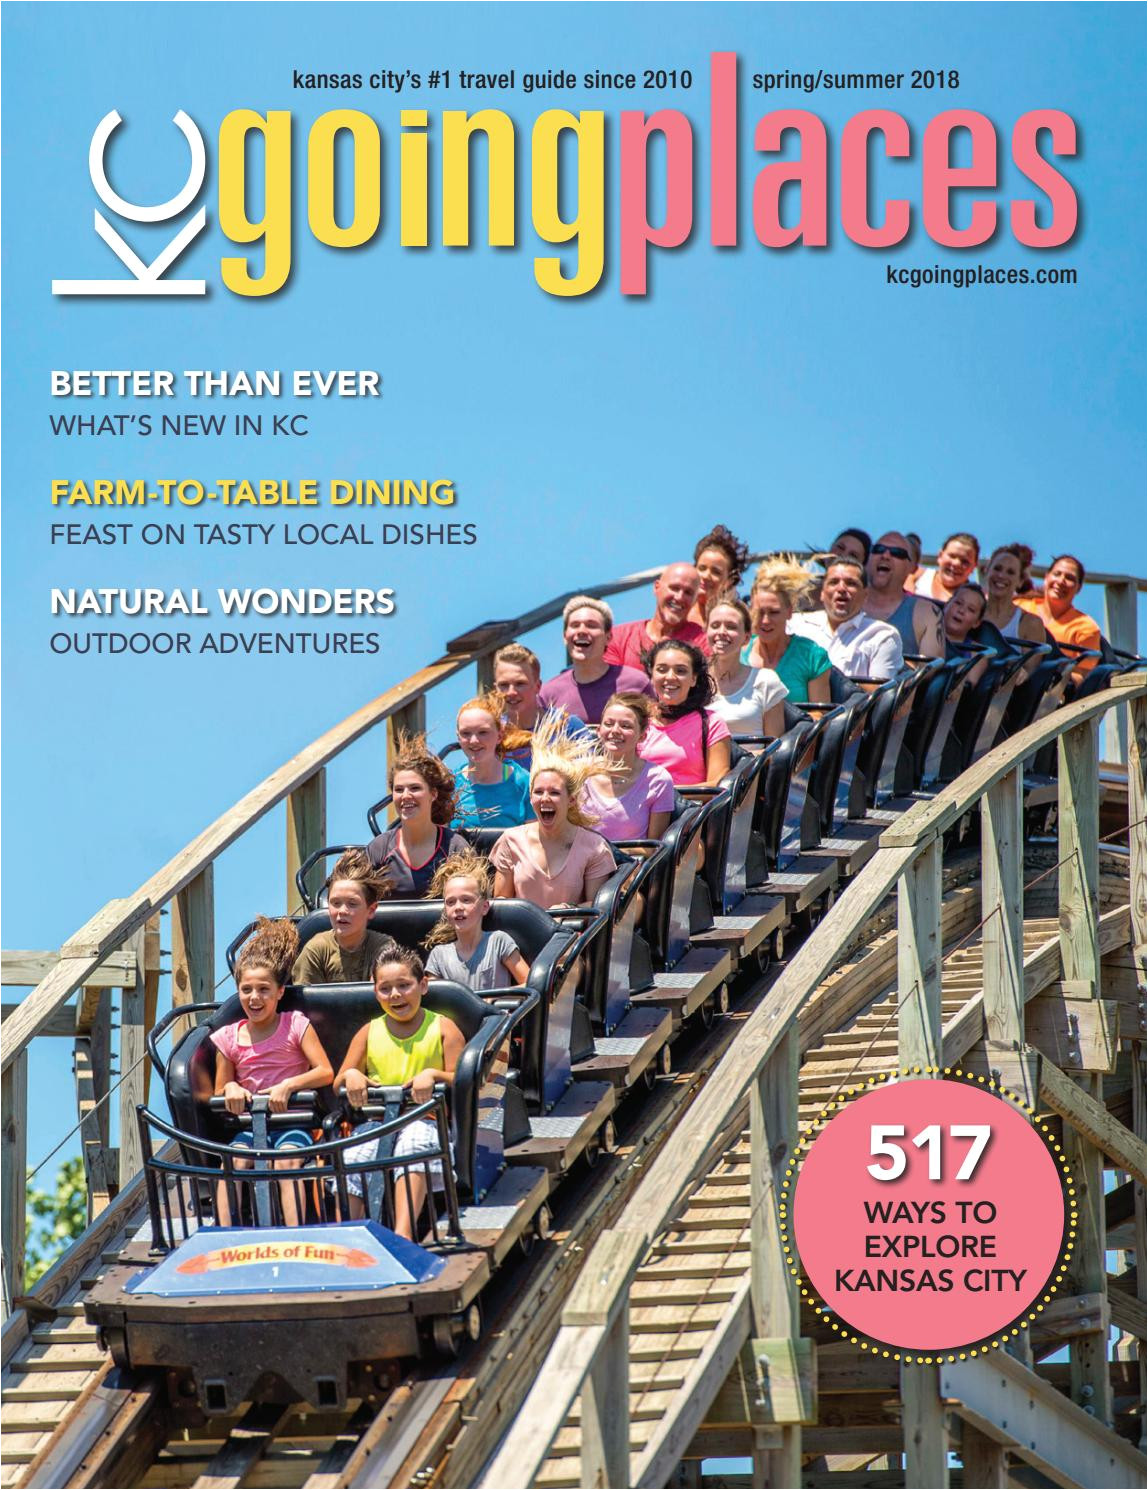 Legoland and Aquarium Kansas City Coupons Kc Going Places Spring Summer 2018 by Kc Parent Magazine issuu